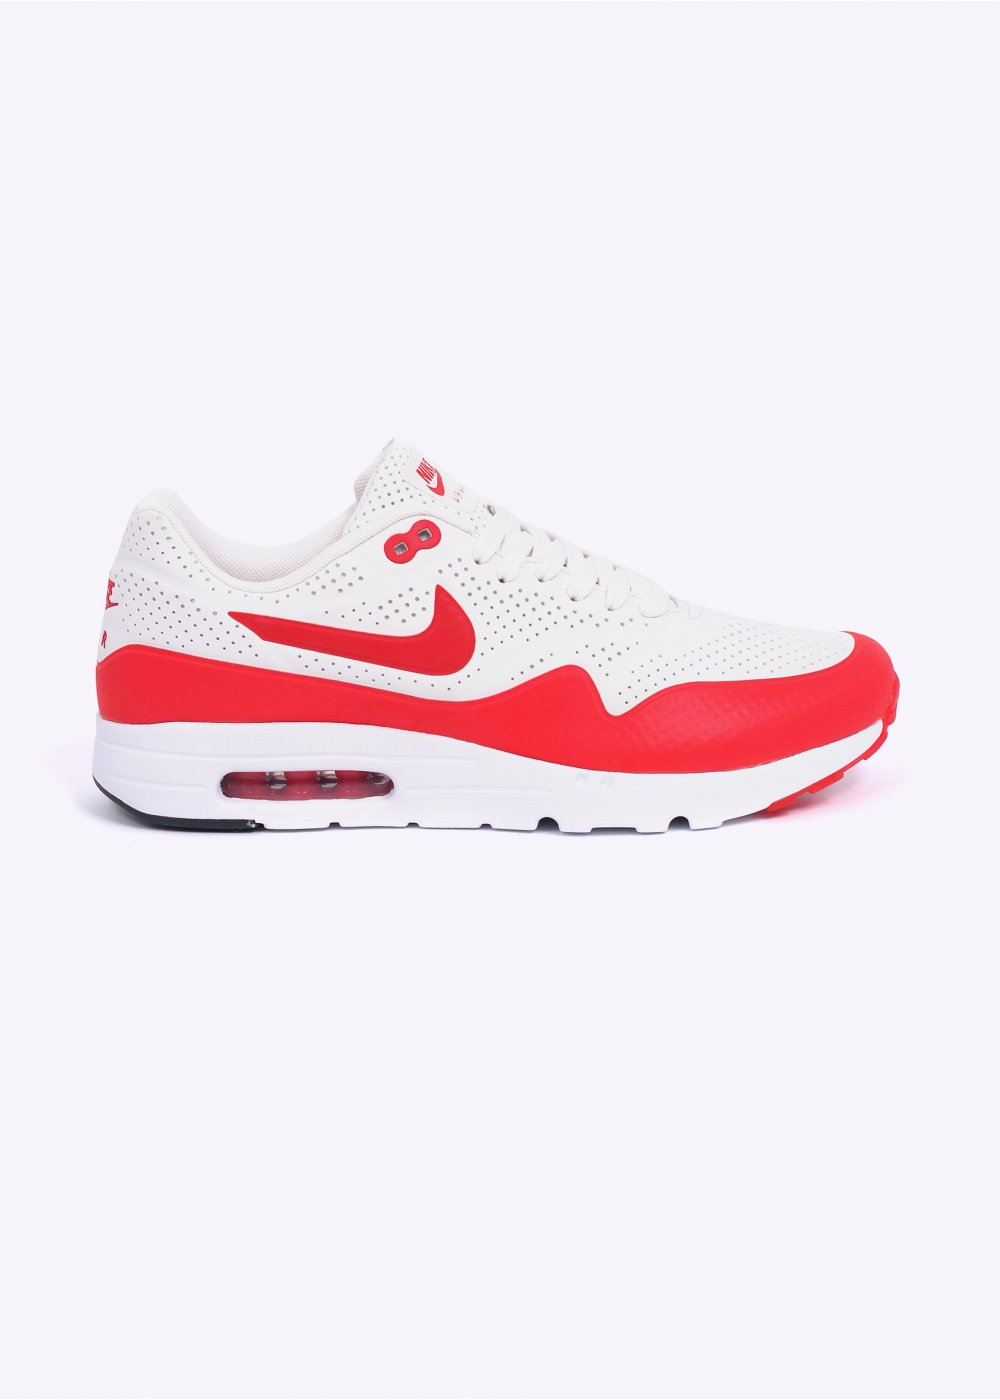 competitive price a6761 a3d0d Air Max 1 Ultra Moire Trainers - Summit White  Challenge Red